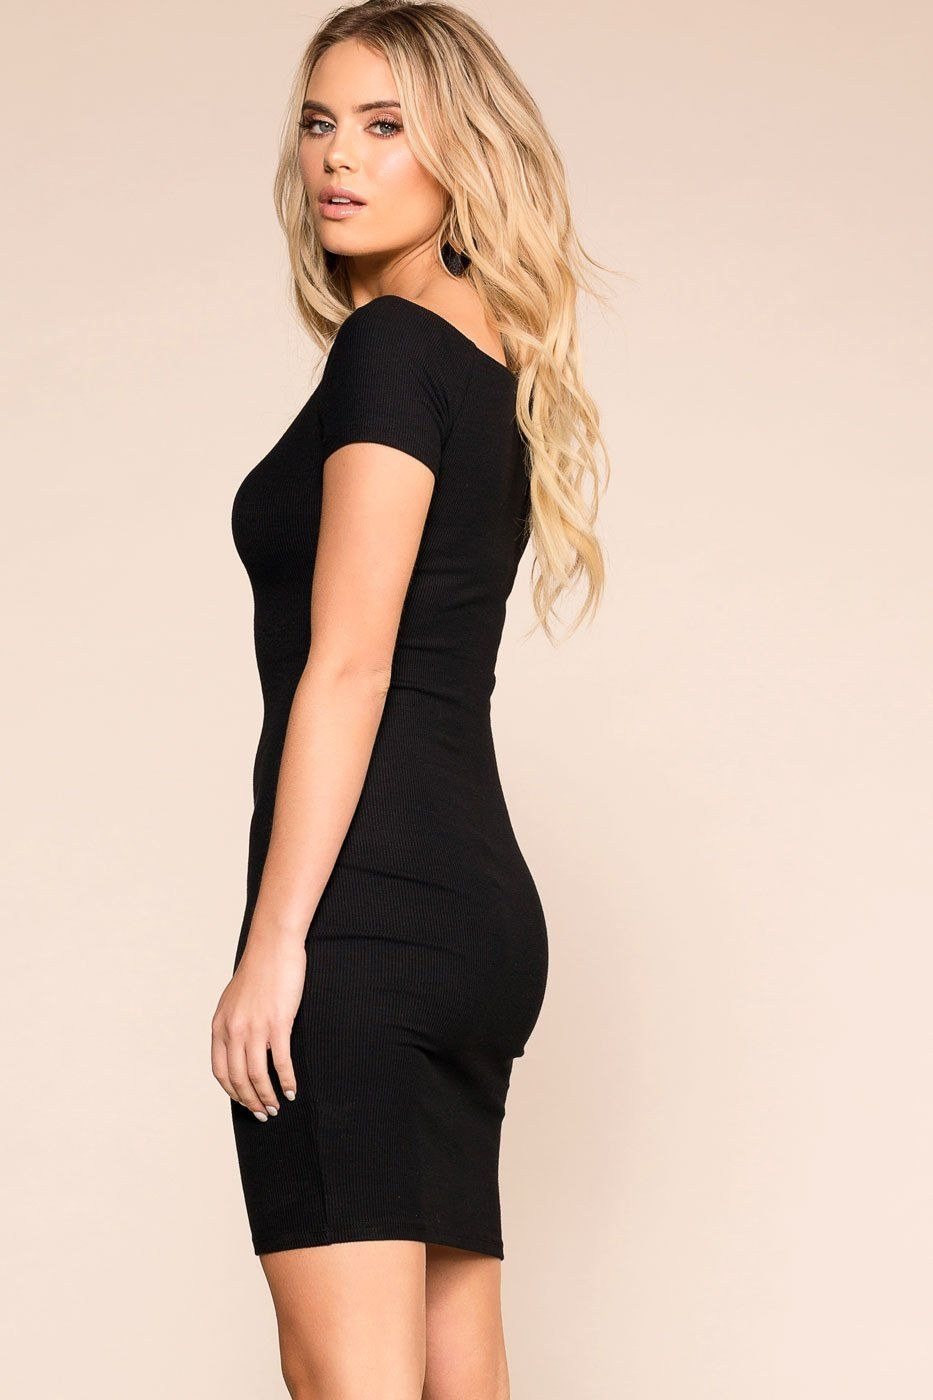 Get It Done Black Buttoned Bodycon Dress | Shop Priceless